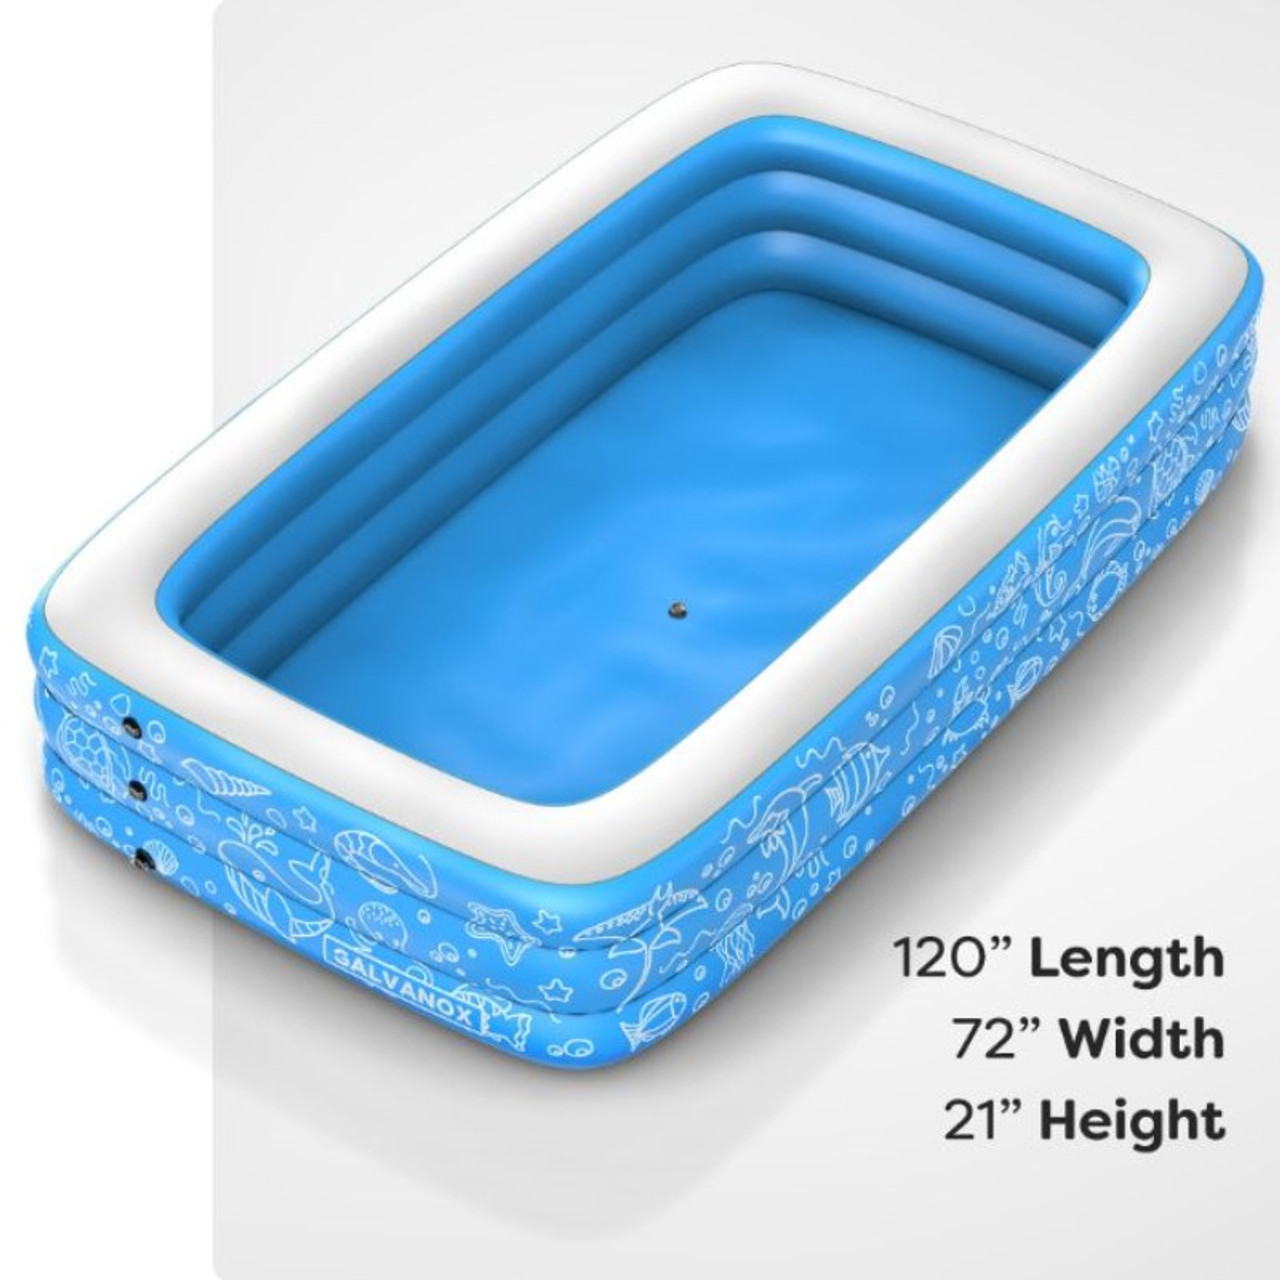 Extra Large Above Ground Family Sized Inflatable Pool - 10' x 6' ft